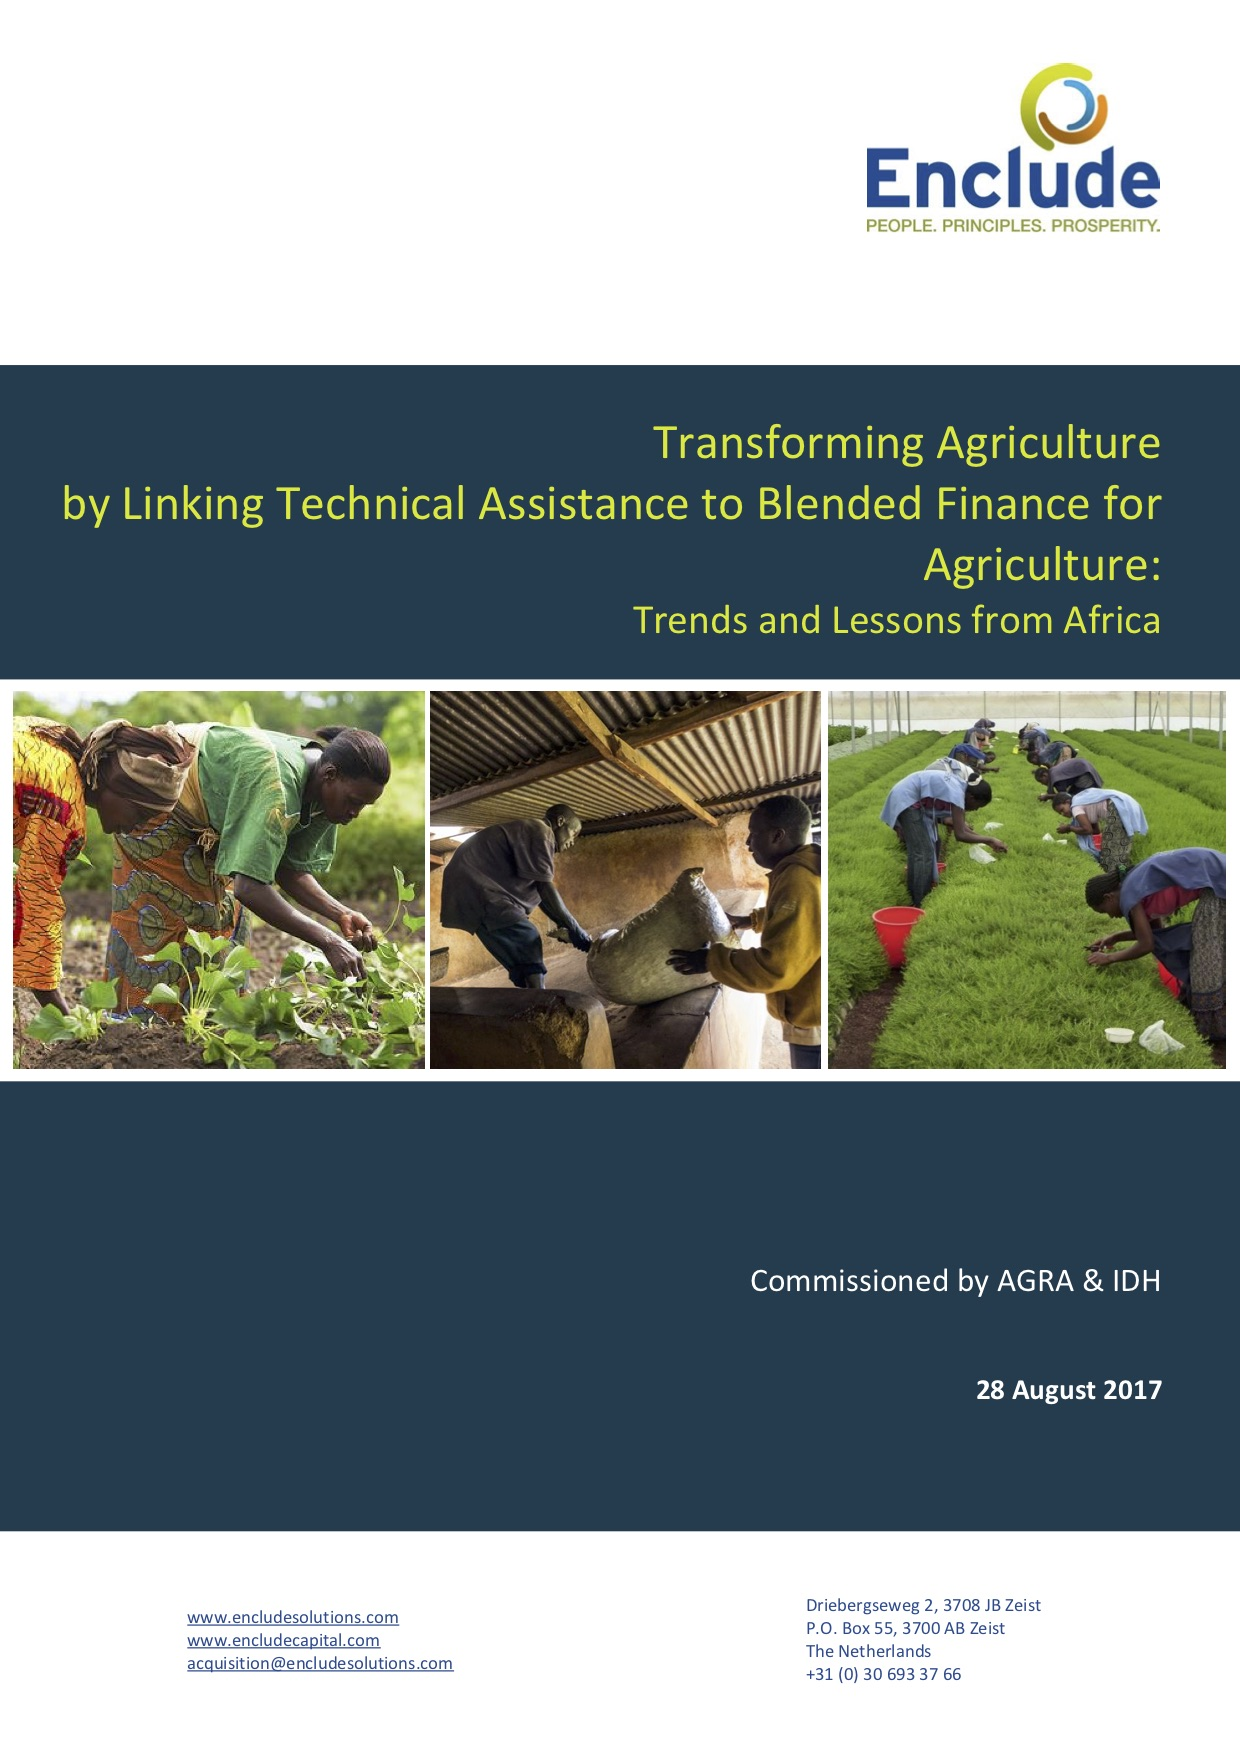 Transforming Agriculture by Linking Technical Assistance to Blended Finance for Agriculture: Trends and Lessons from Africa